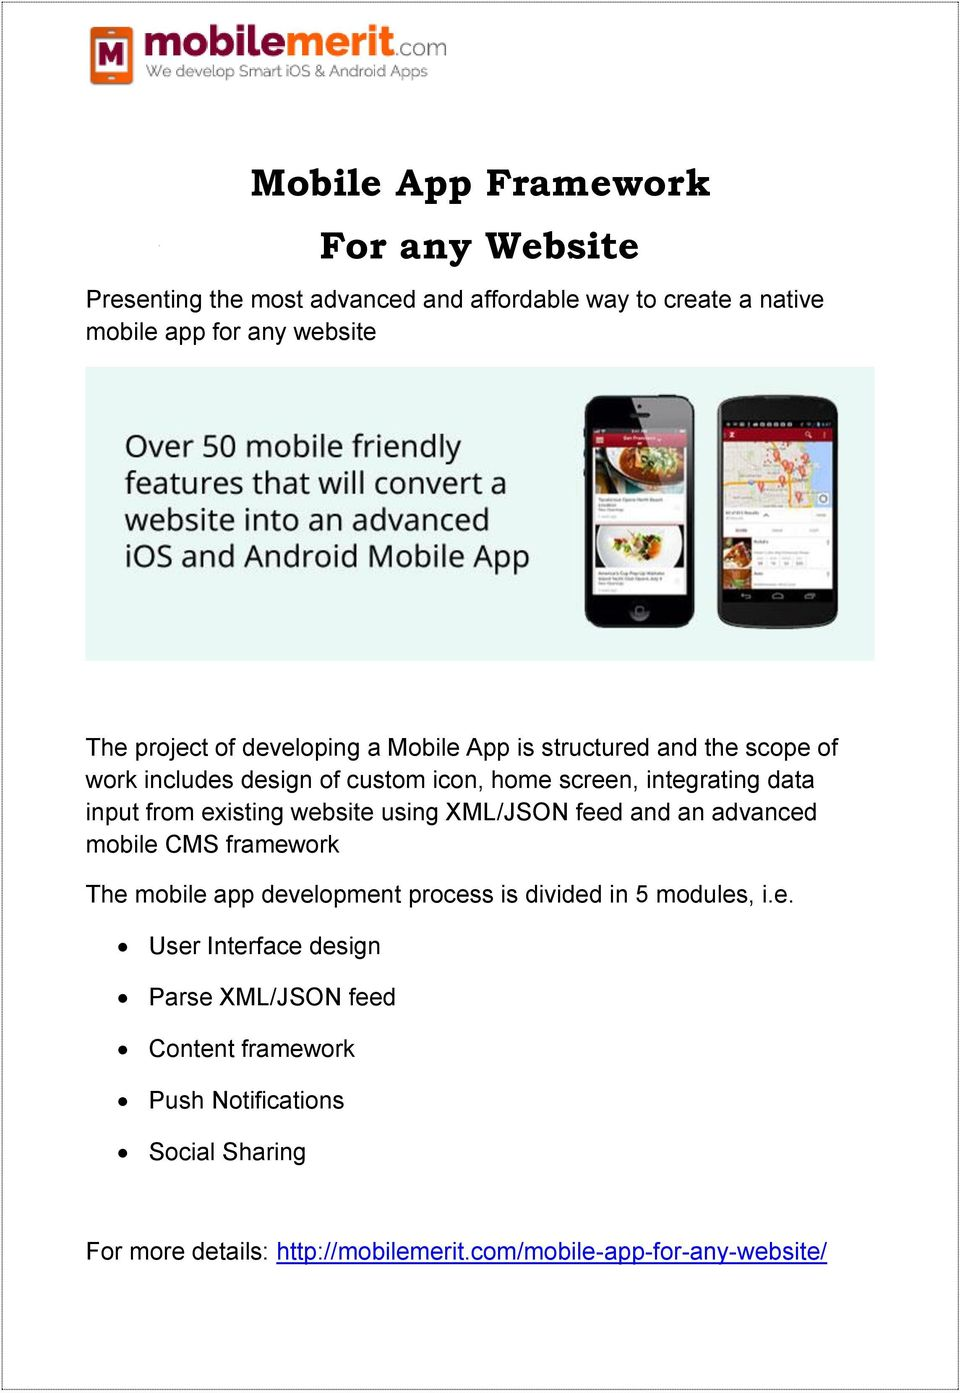 website using XML/JSON feed and an advanced mobile CMS framework The mobile app development process is divided in 5 modules, i.e. User Interface design Parse XML/JSON feed Content framework Push Notifications Social Sharing For more details: http://mobilemerit.